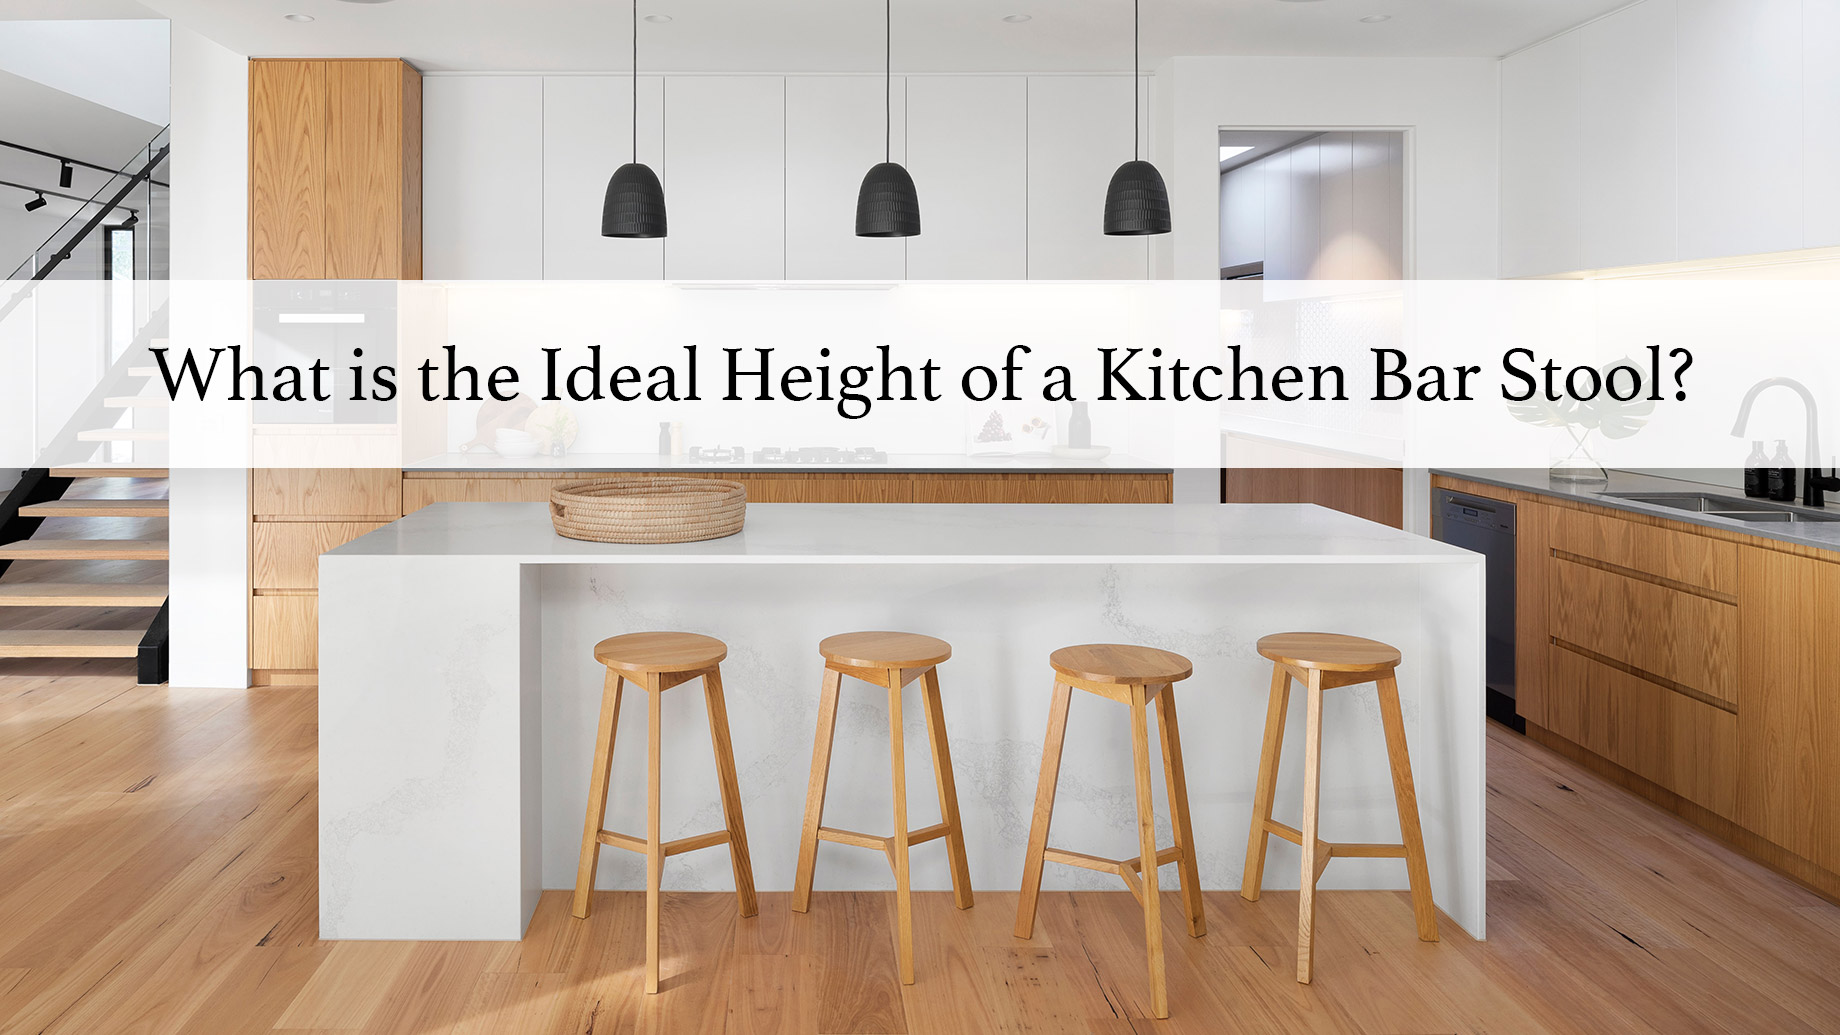 What is the Ideal Height of a Kitchen Bar Stool?